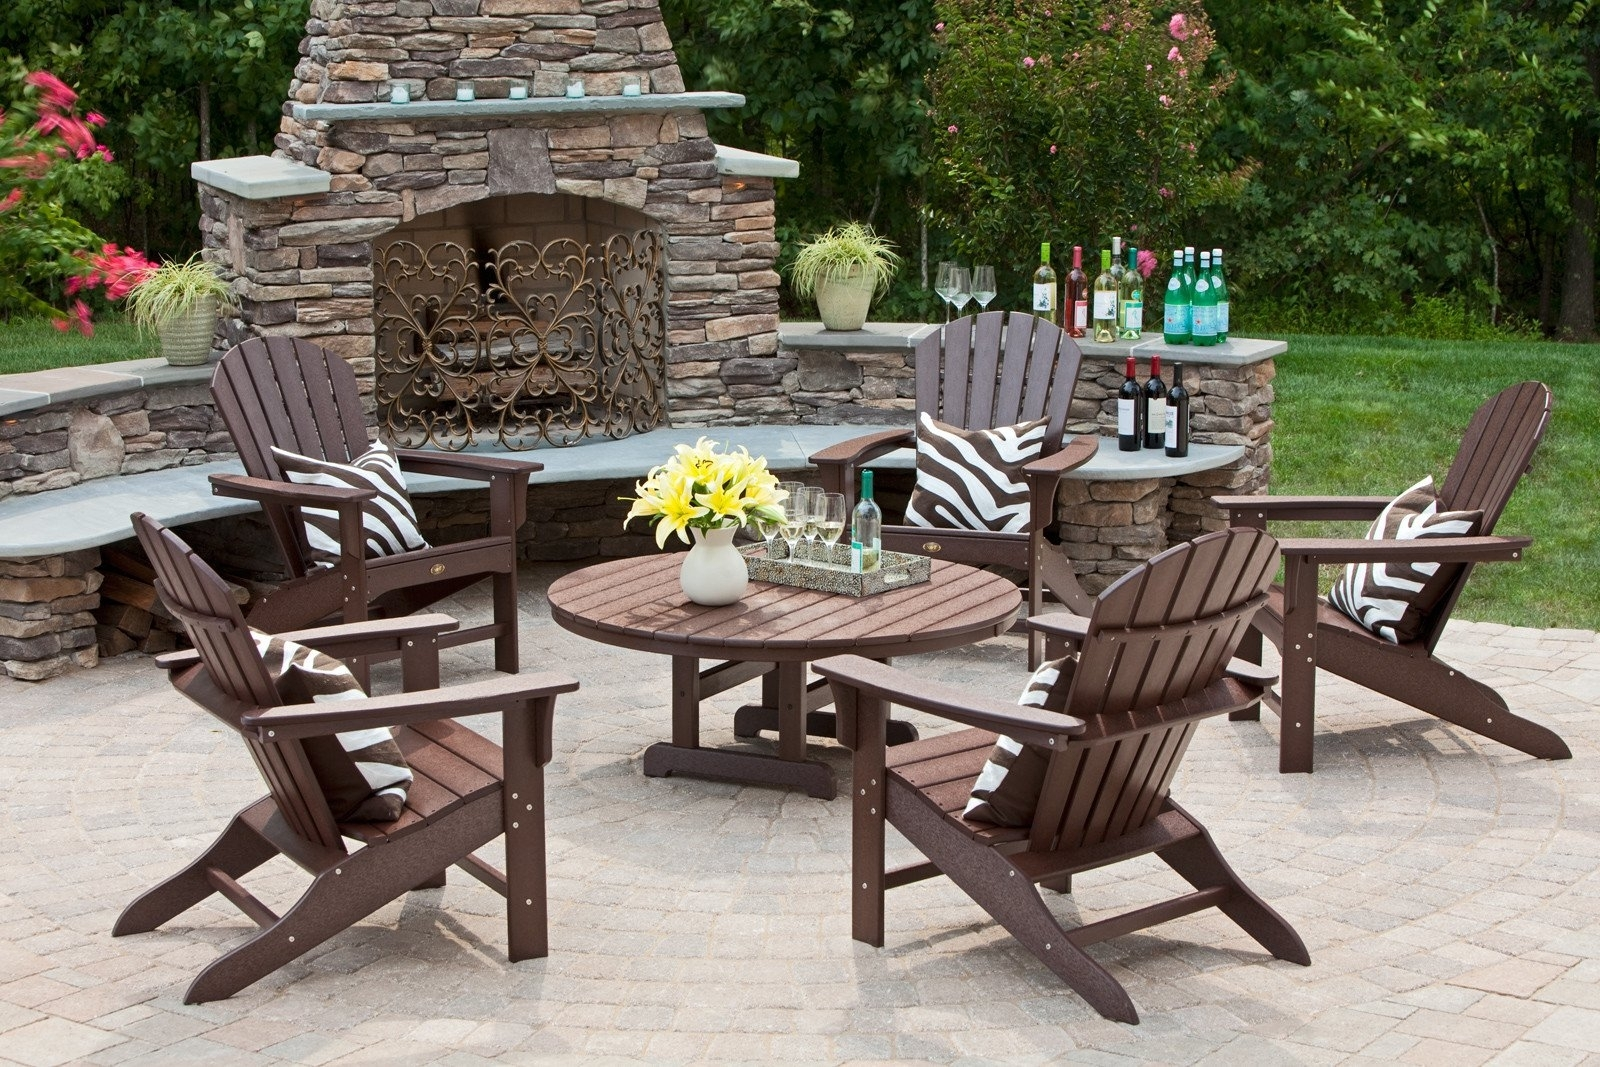 Trendy Sears Patio Furniture Conversation Sets With Regard To Patio : Patio Stones Onriture And Easy Conversation Sets Clearance (View 17 of 20)